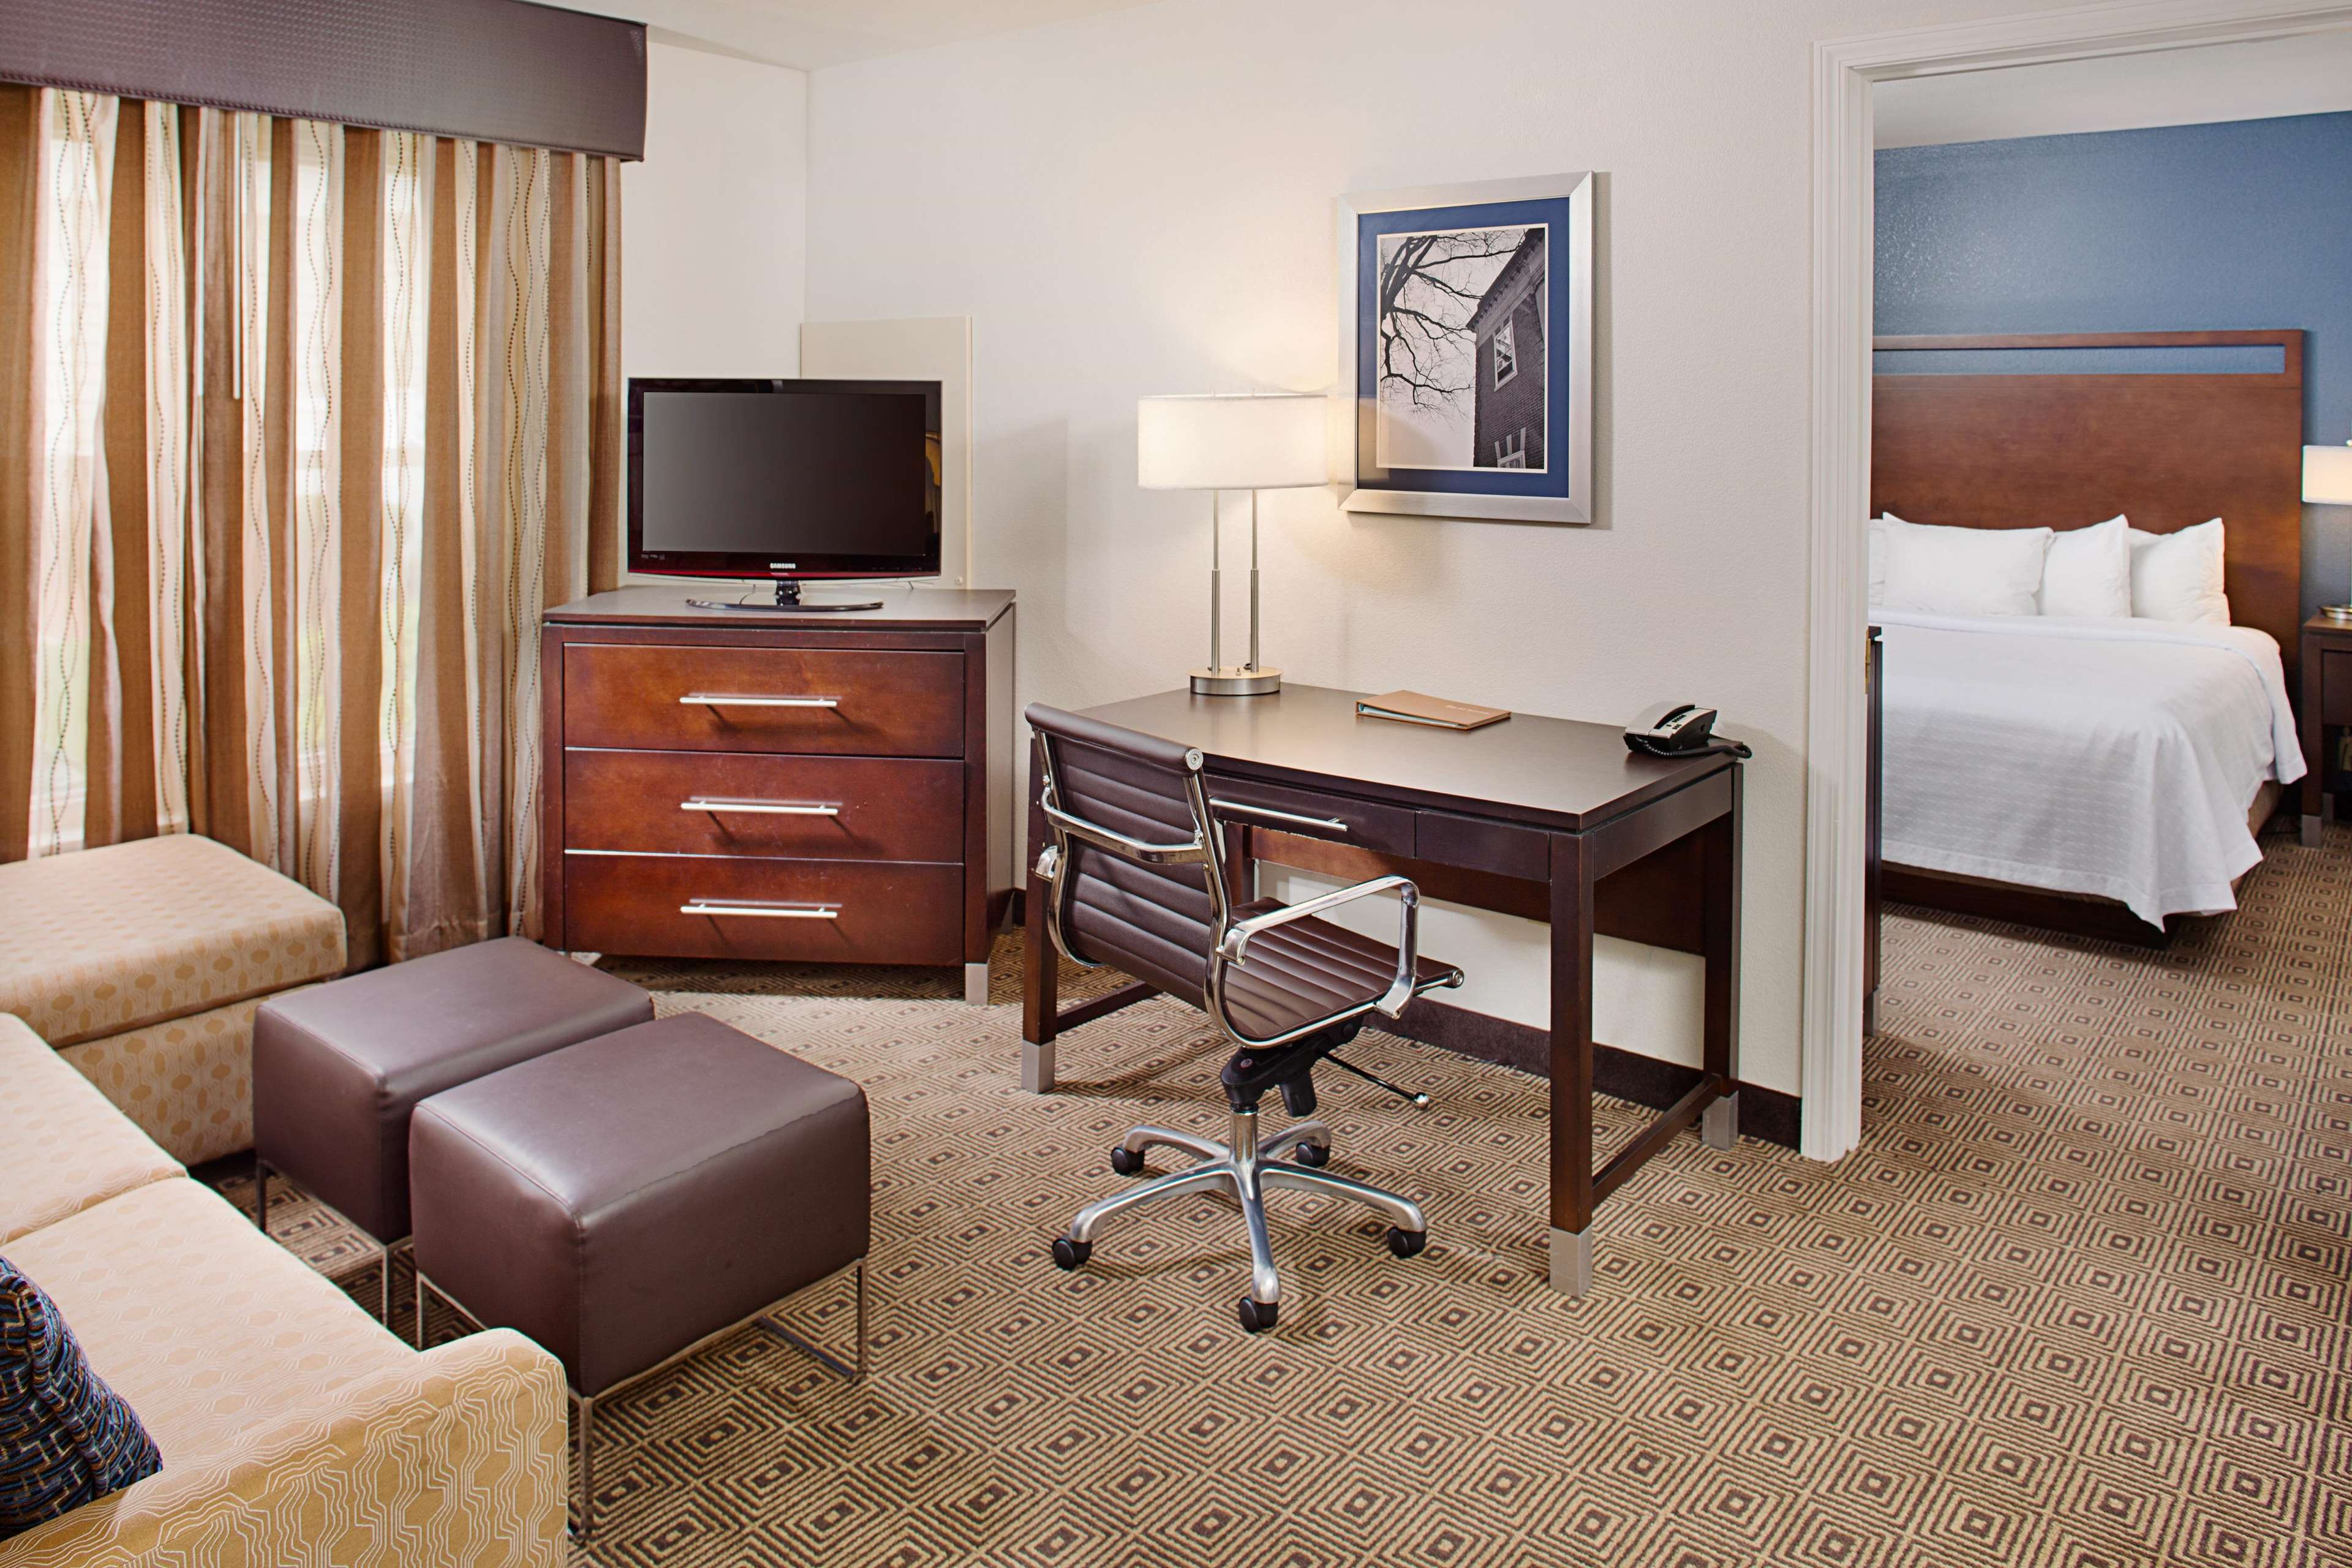 Homewood Suites by Hilton Manchester/Airport image 5